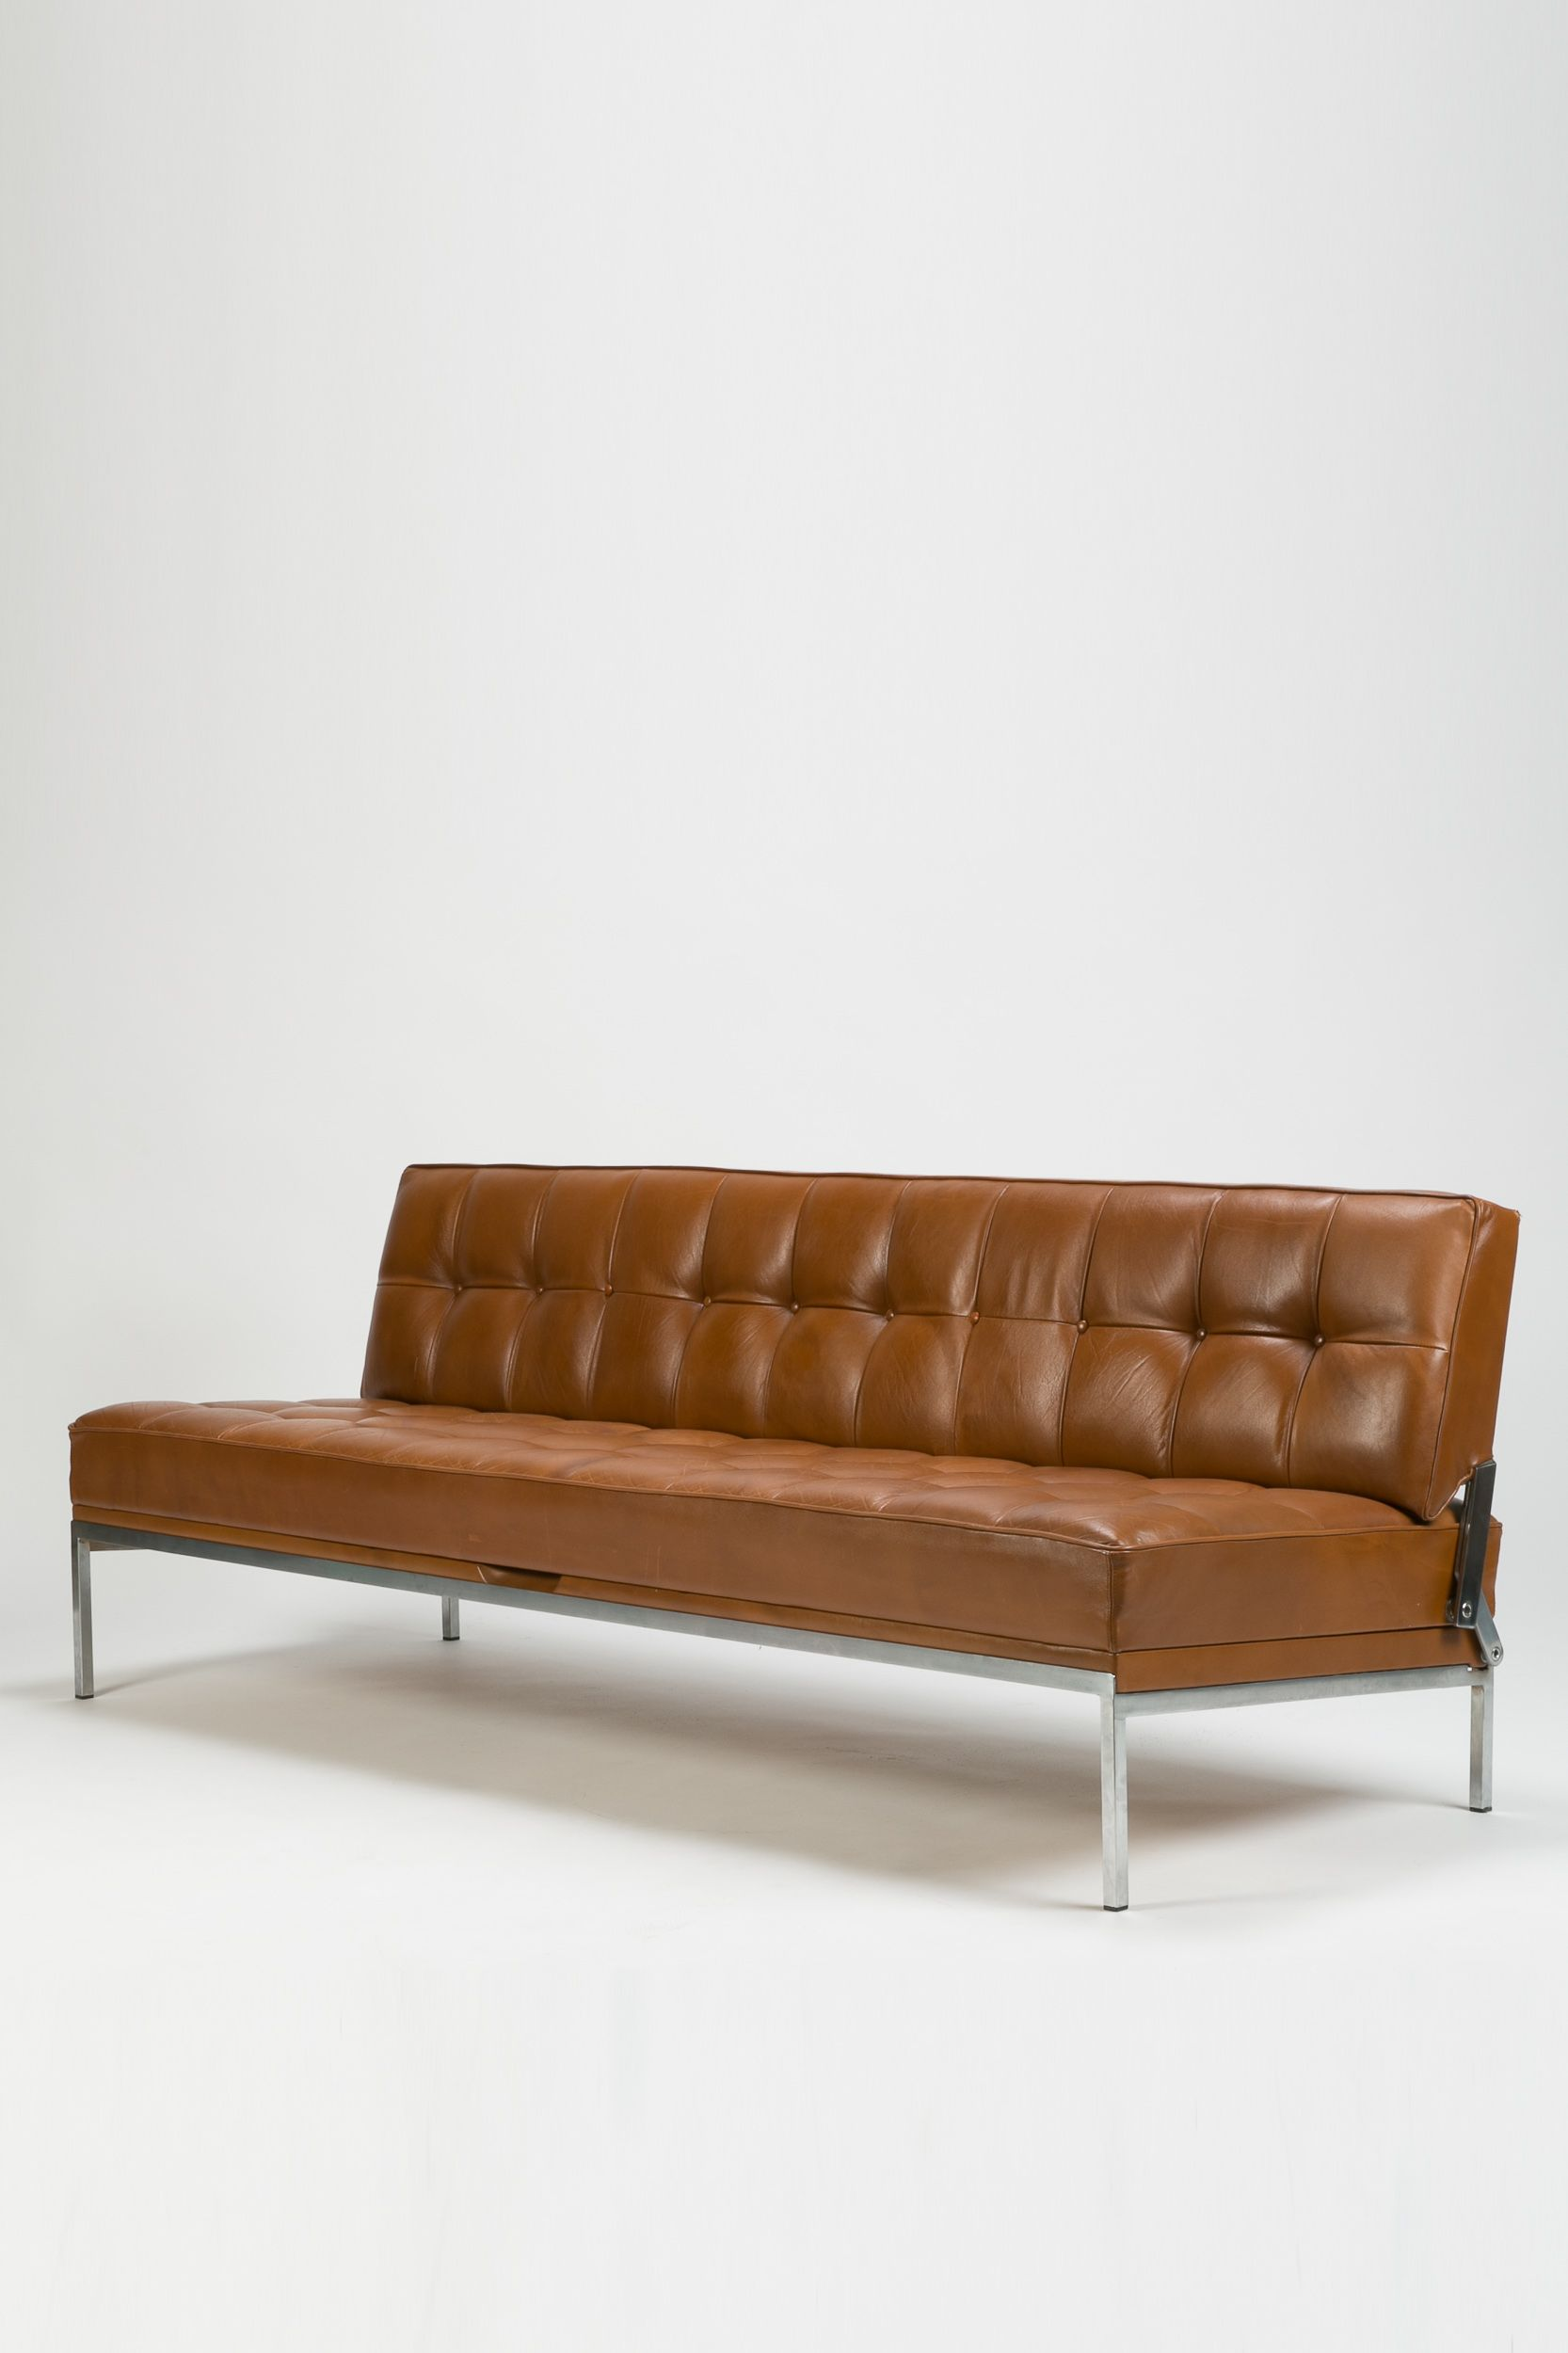 Schlafsofa Wittmann Johannes Spalt Chromed Metal And Leather Constanzebank Sofa For